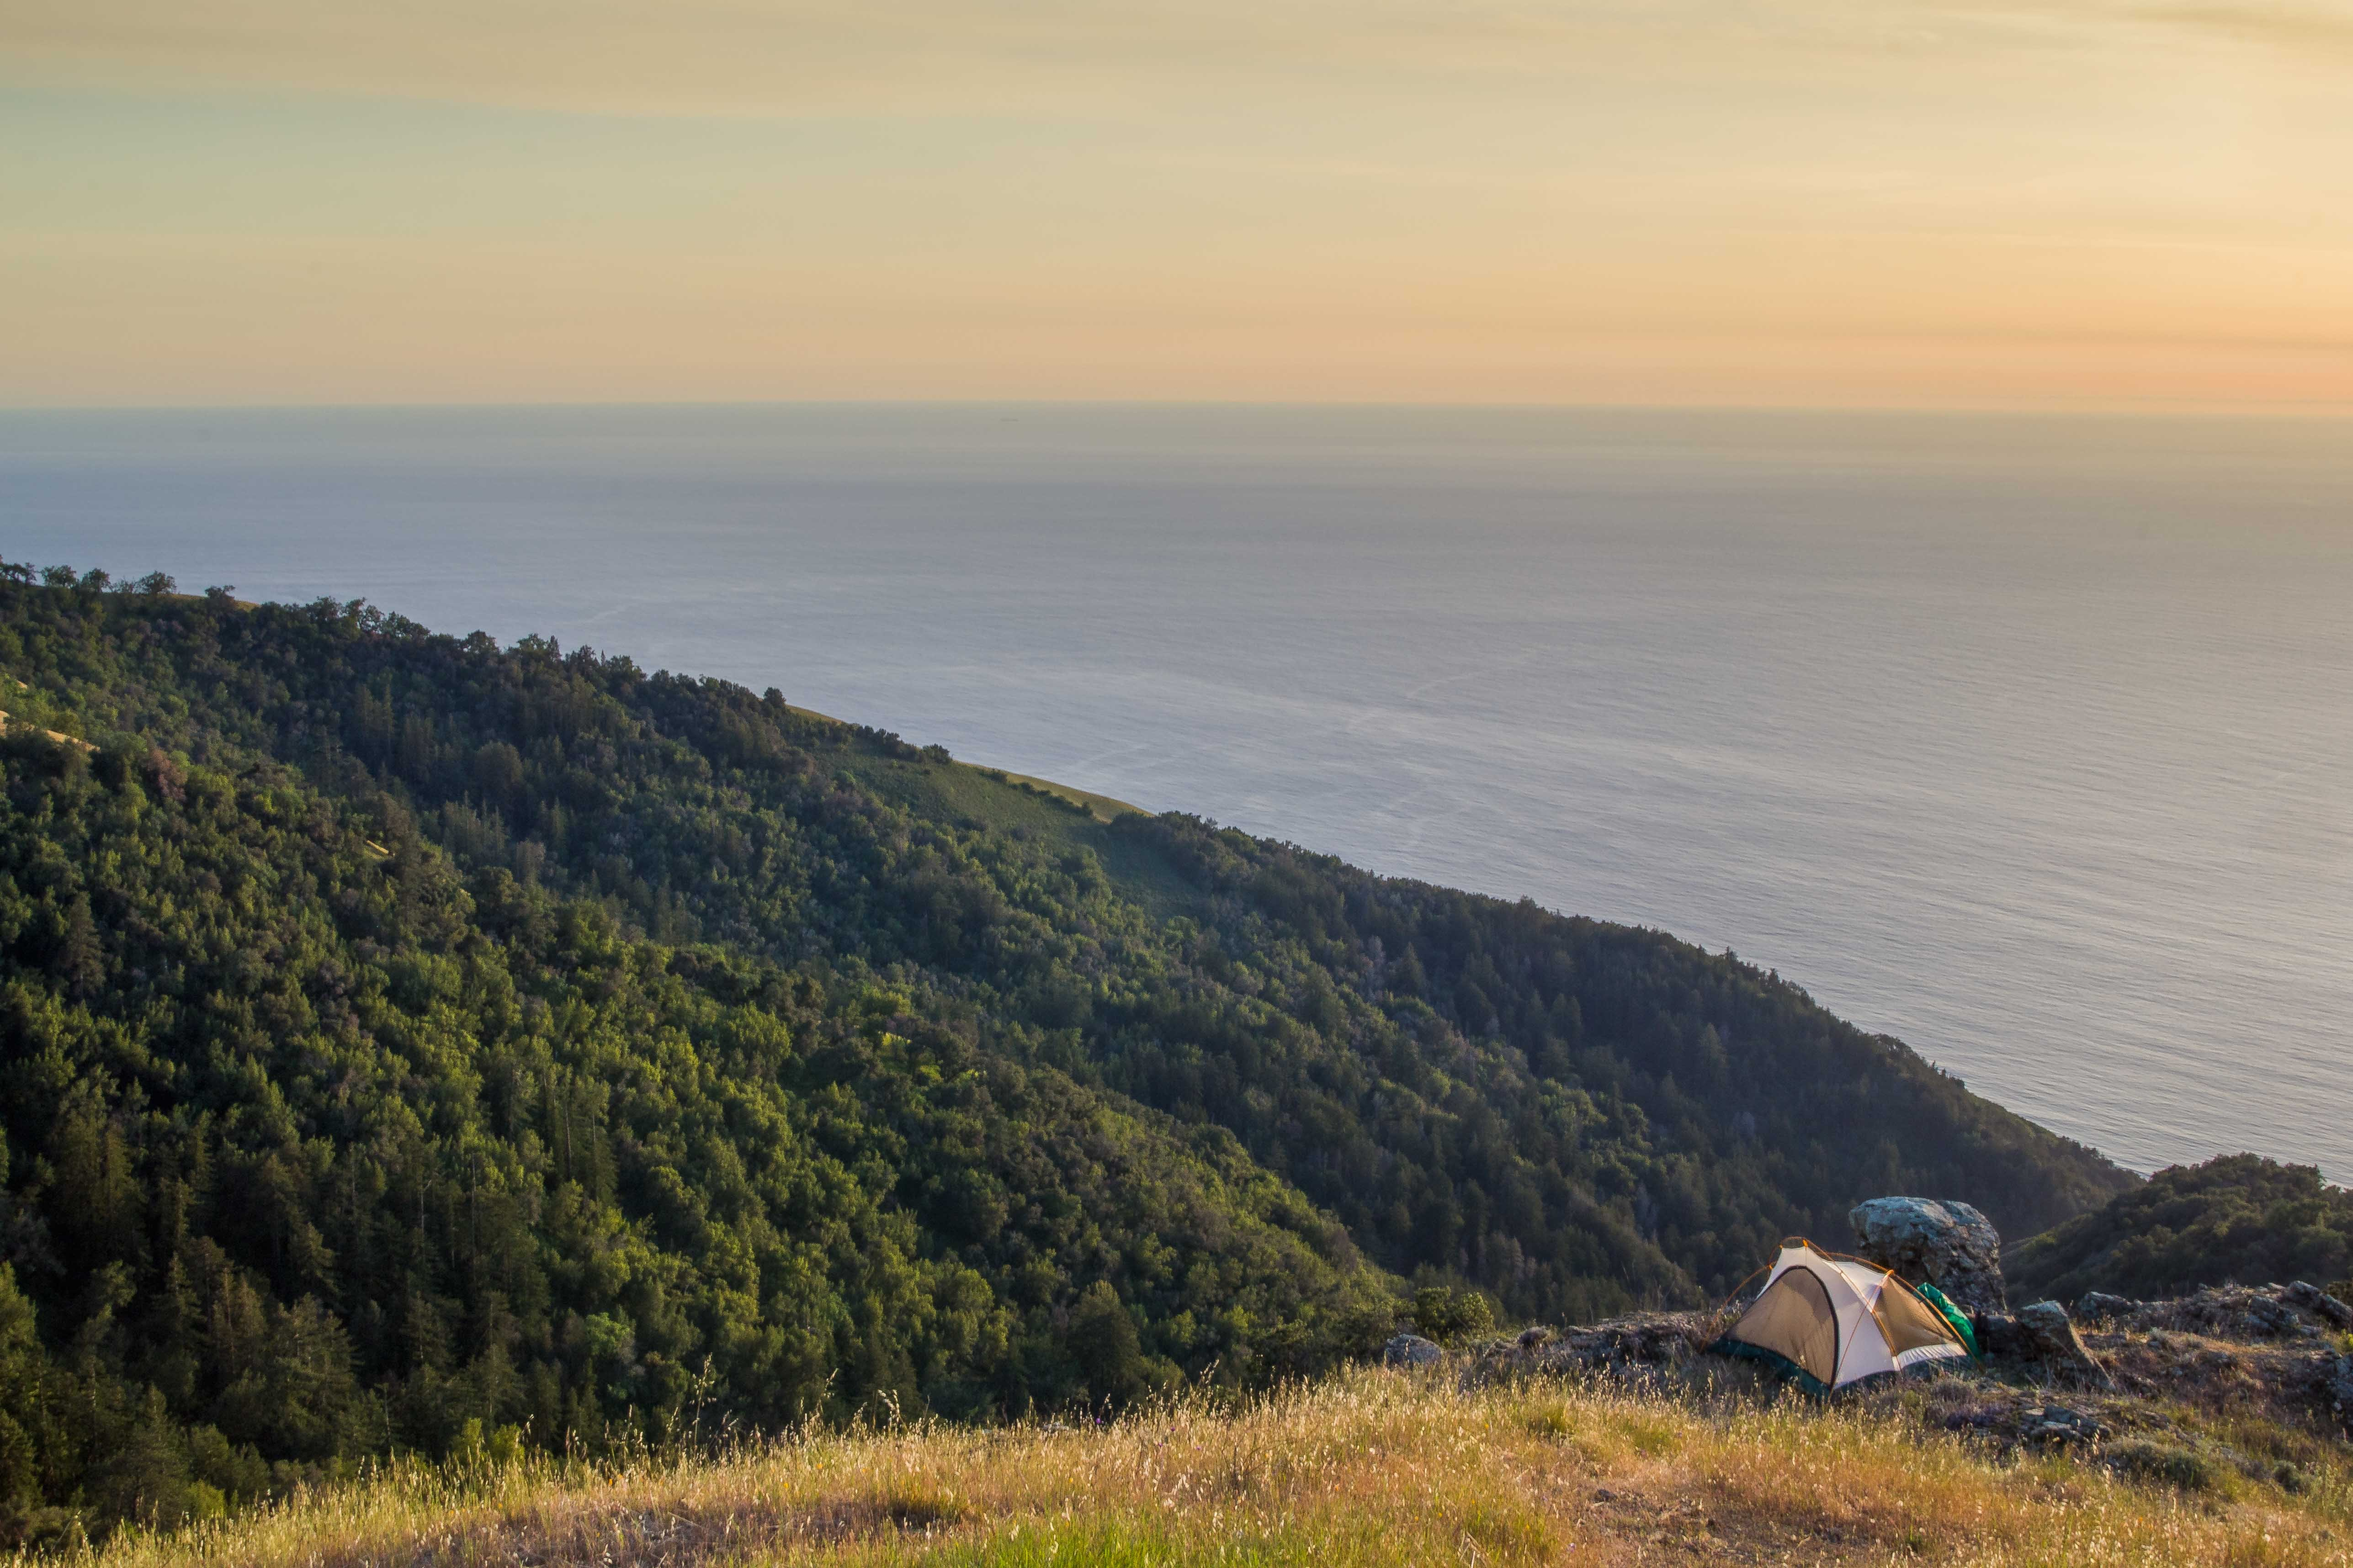 Camping On The Edge Of The World Big Sur Ca 4k Wallpaper